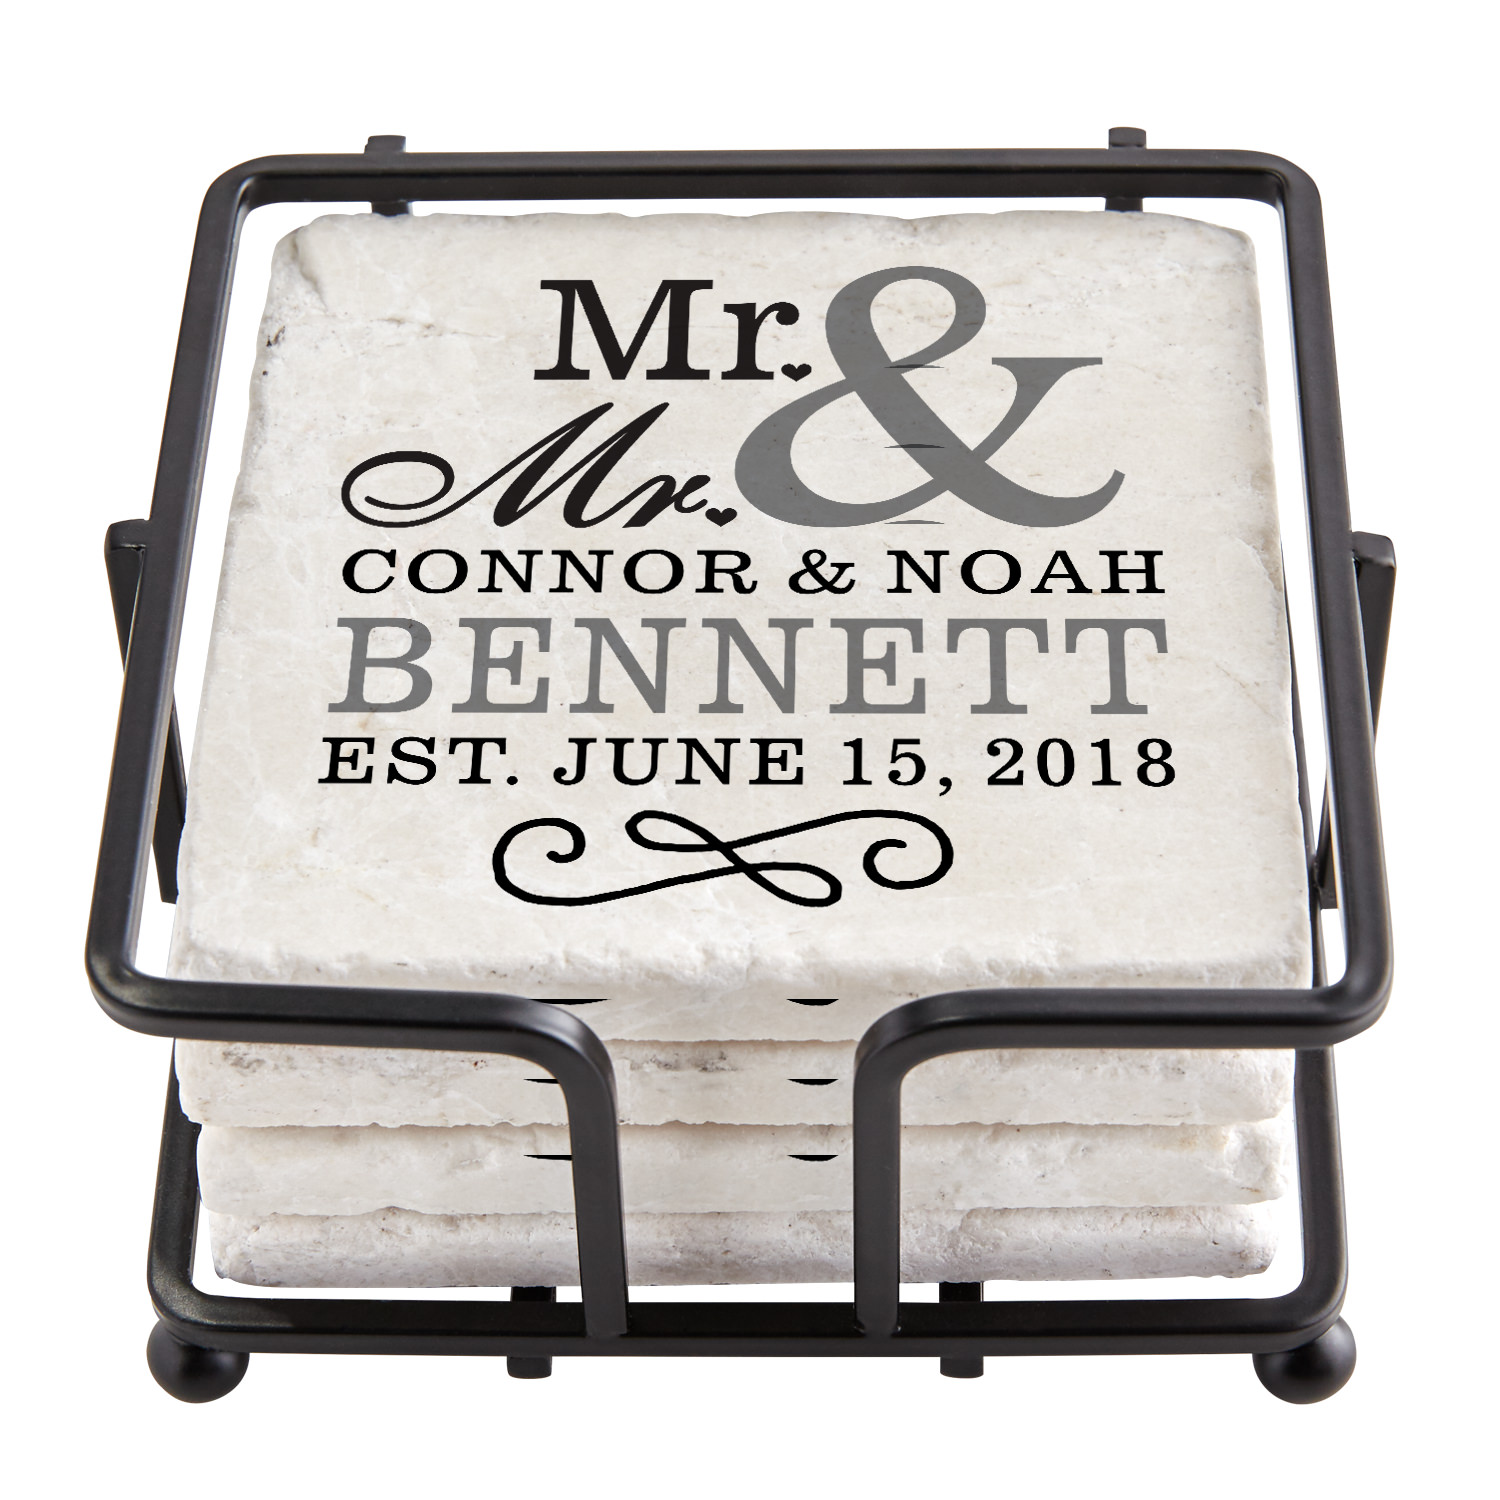 Personalized Happy Couple Tile Coaster Set with Holder - Mr. & Mr.